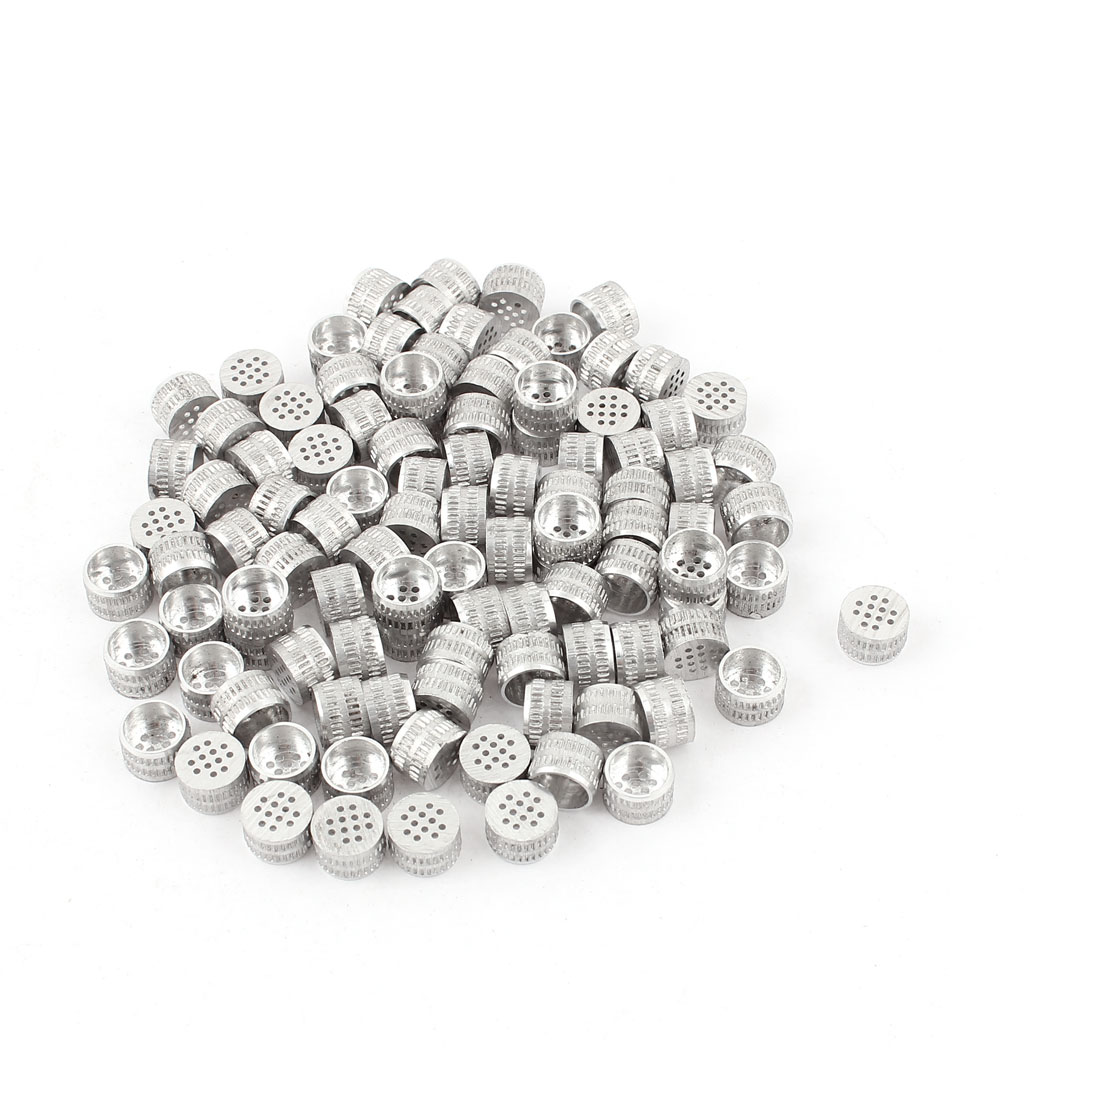 100pcs Silver Tone Aluminium Hole Type Core Box Vents 8mm x 5mm